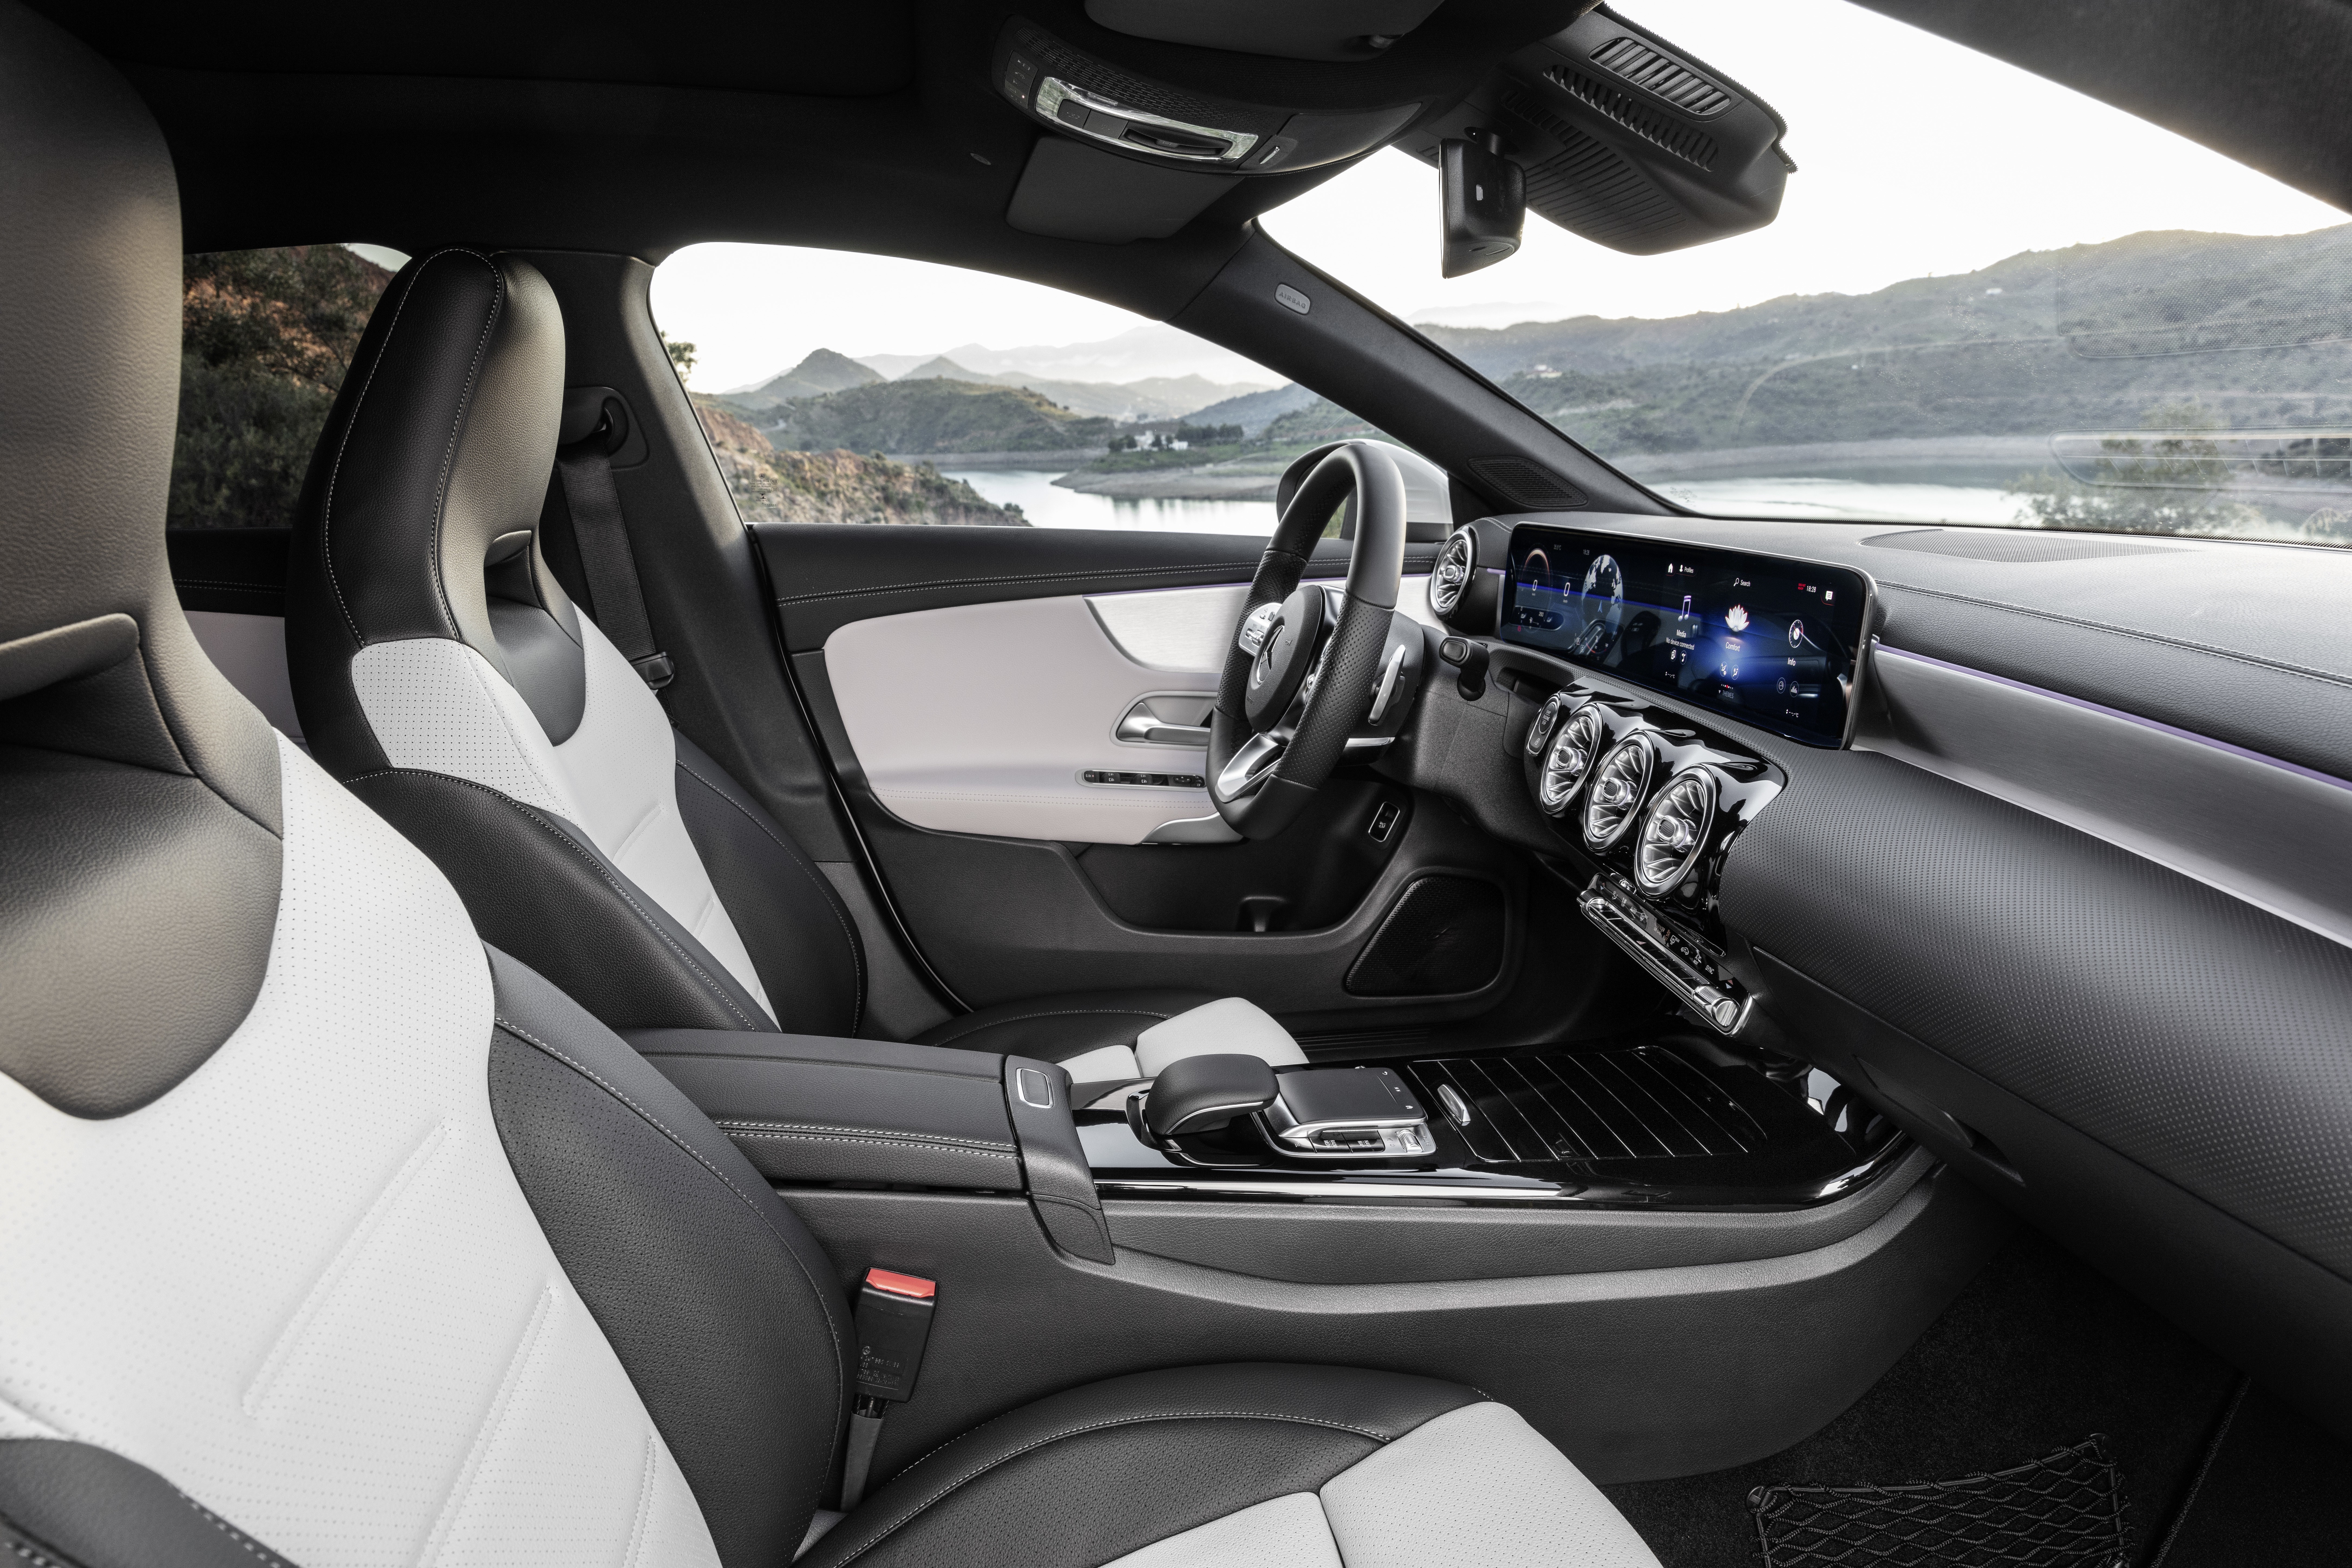 Mercedes-Benz CLA Shooting Brake, X118, 2019, AMG-Line, Interieur, digitalweiß // Mercedes-Benz CLA Shooting Brake, X118, 2019, AMG-Line, Interieur, digital white